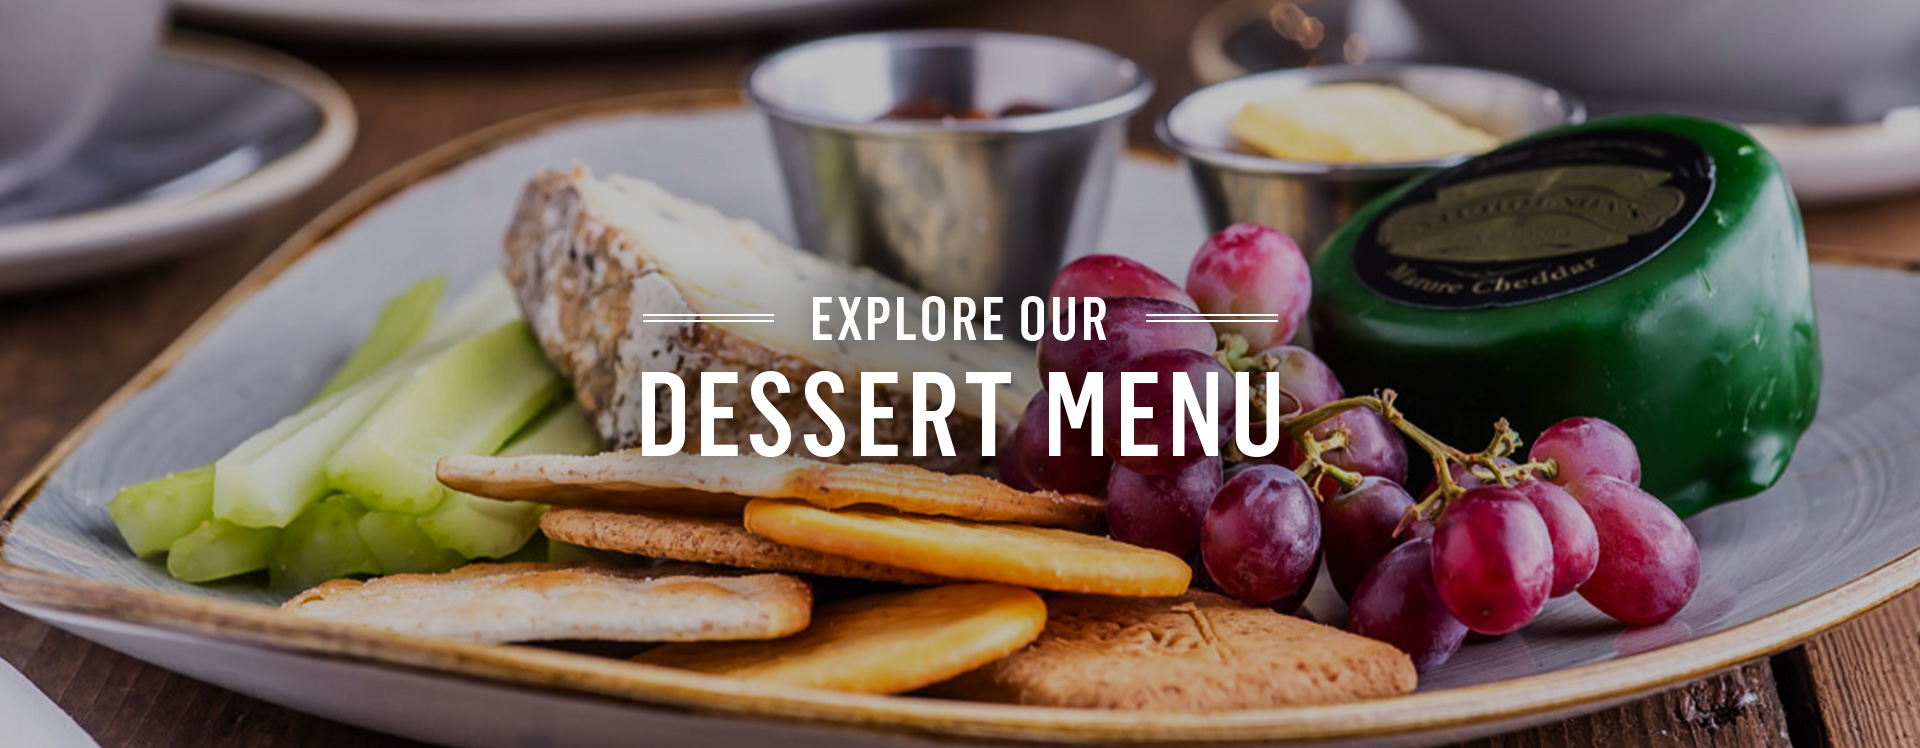 Dessert menu at The Drum and Monkey - Book a table